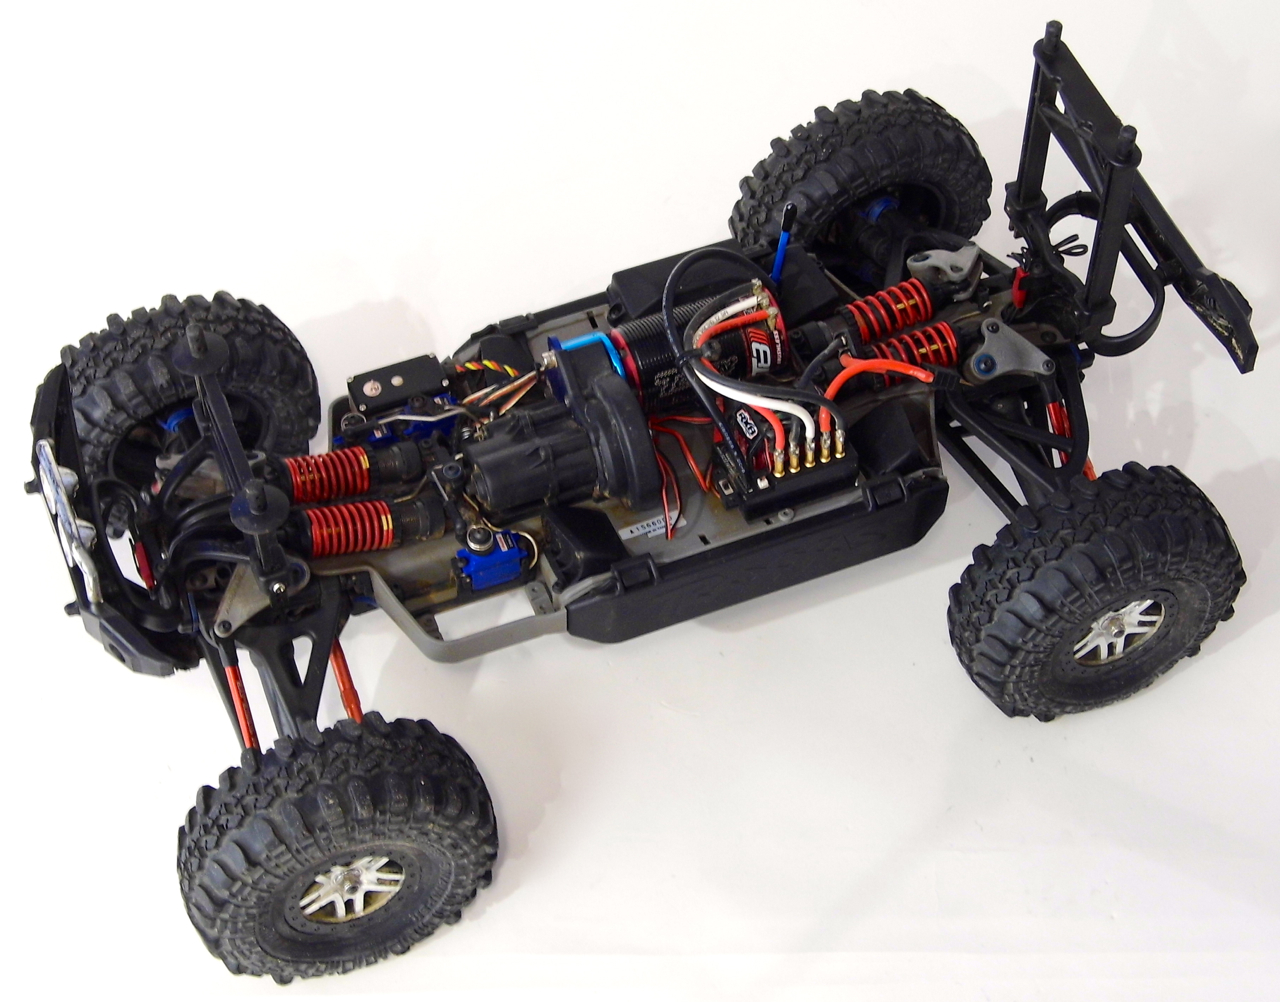 slayer rc truck with Ments on Rc Auto Traxxas Nitro Slayer additionally 141844272307 as well Traxxas 2215 Receiver Wiring Diagram further Traxxas Wallpaper also Traxxas Xmaxx Rc Truck.